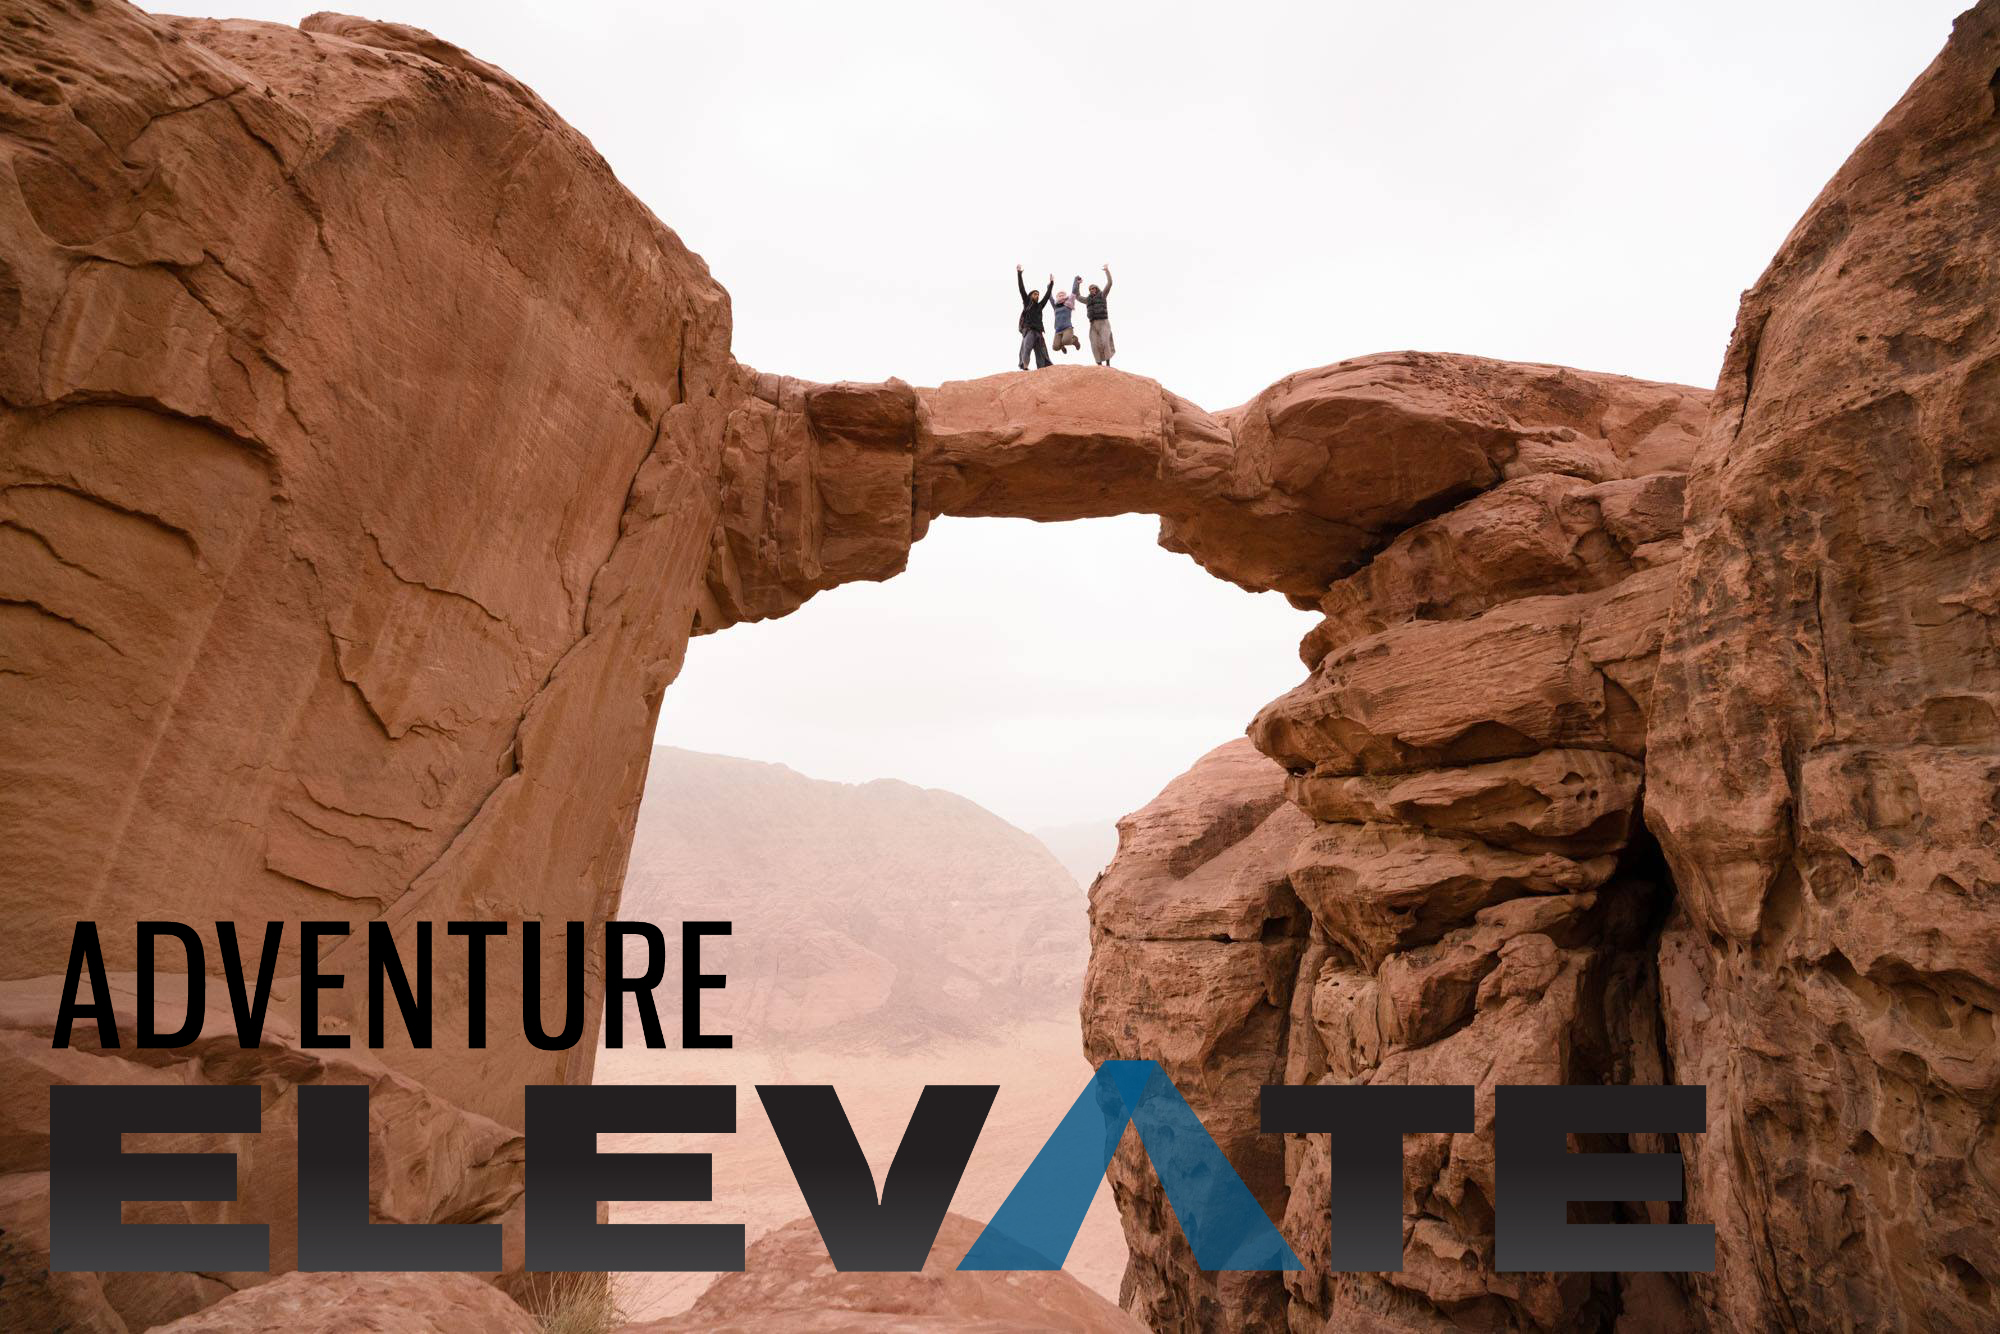 ATTA Elevate - 1 entry pass to the AdventureELEVATE conference. Join hundreds of other adventure travel and outdoor recreation professionals for 2020 conference.Date and Location: To be announced!Retail: $950Donated by: Adventure Travel Trade Association